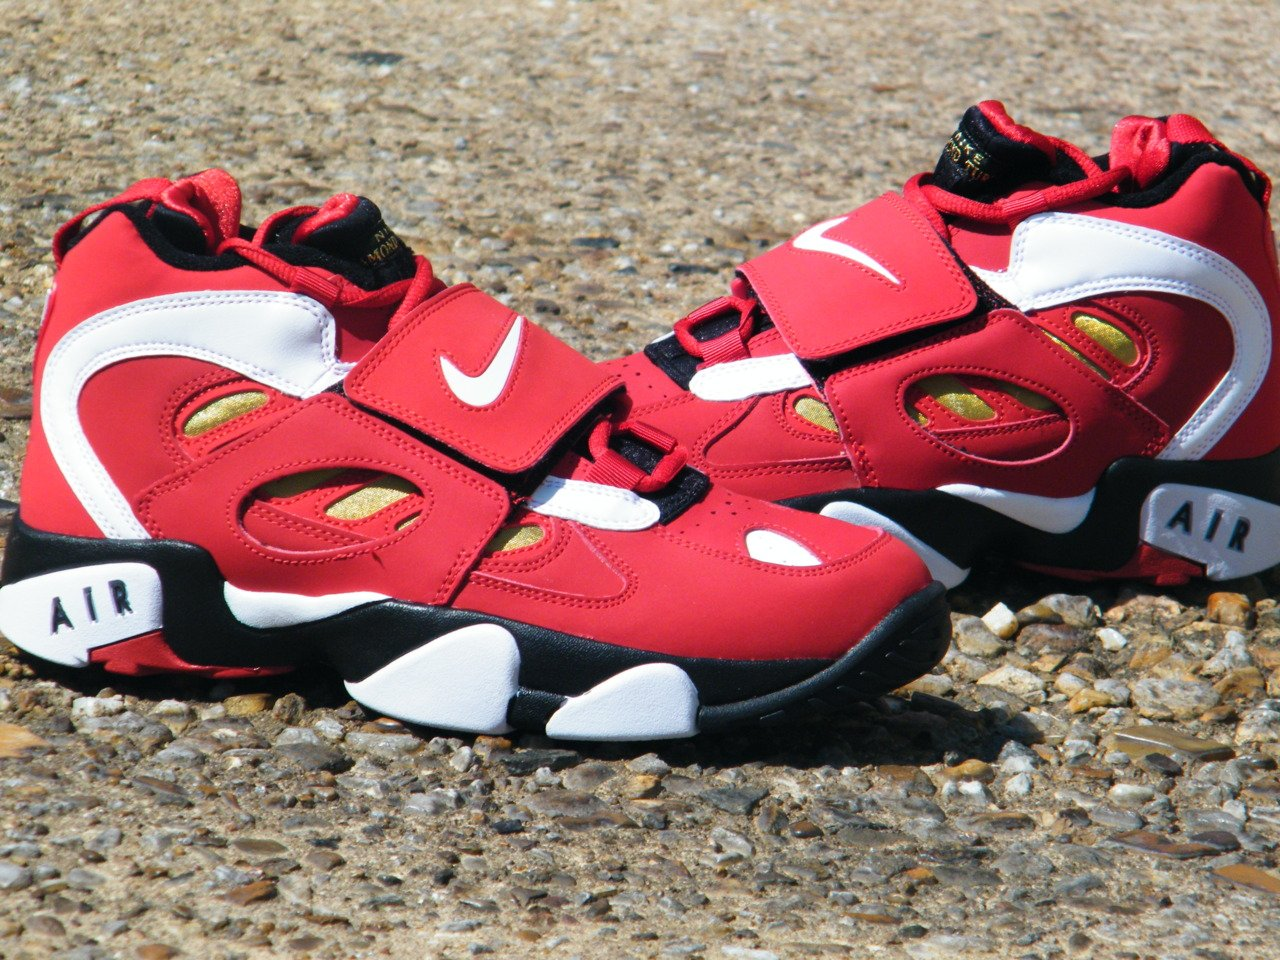 Nike Air Diamond Turf II 'Varsity Red/White-Metallic Gold' Arriving at Retailers